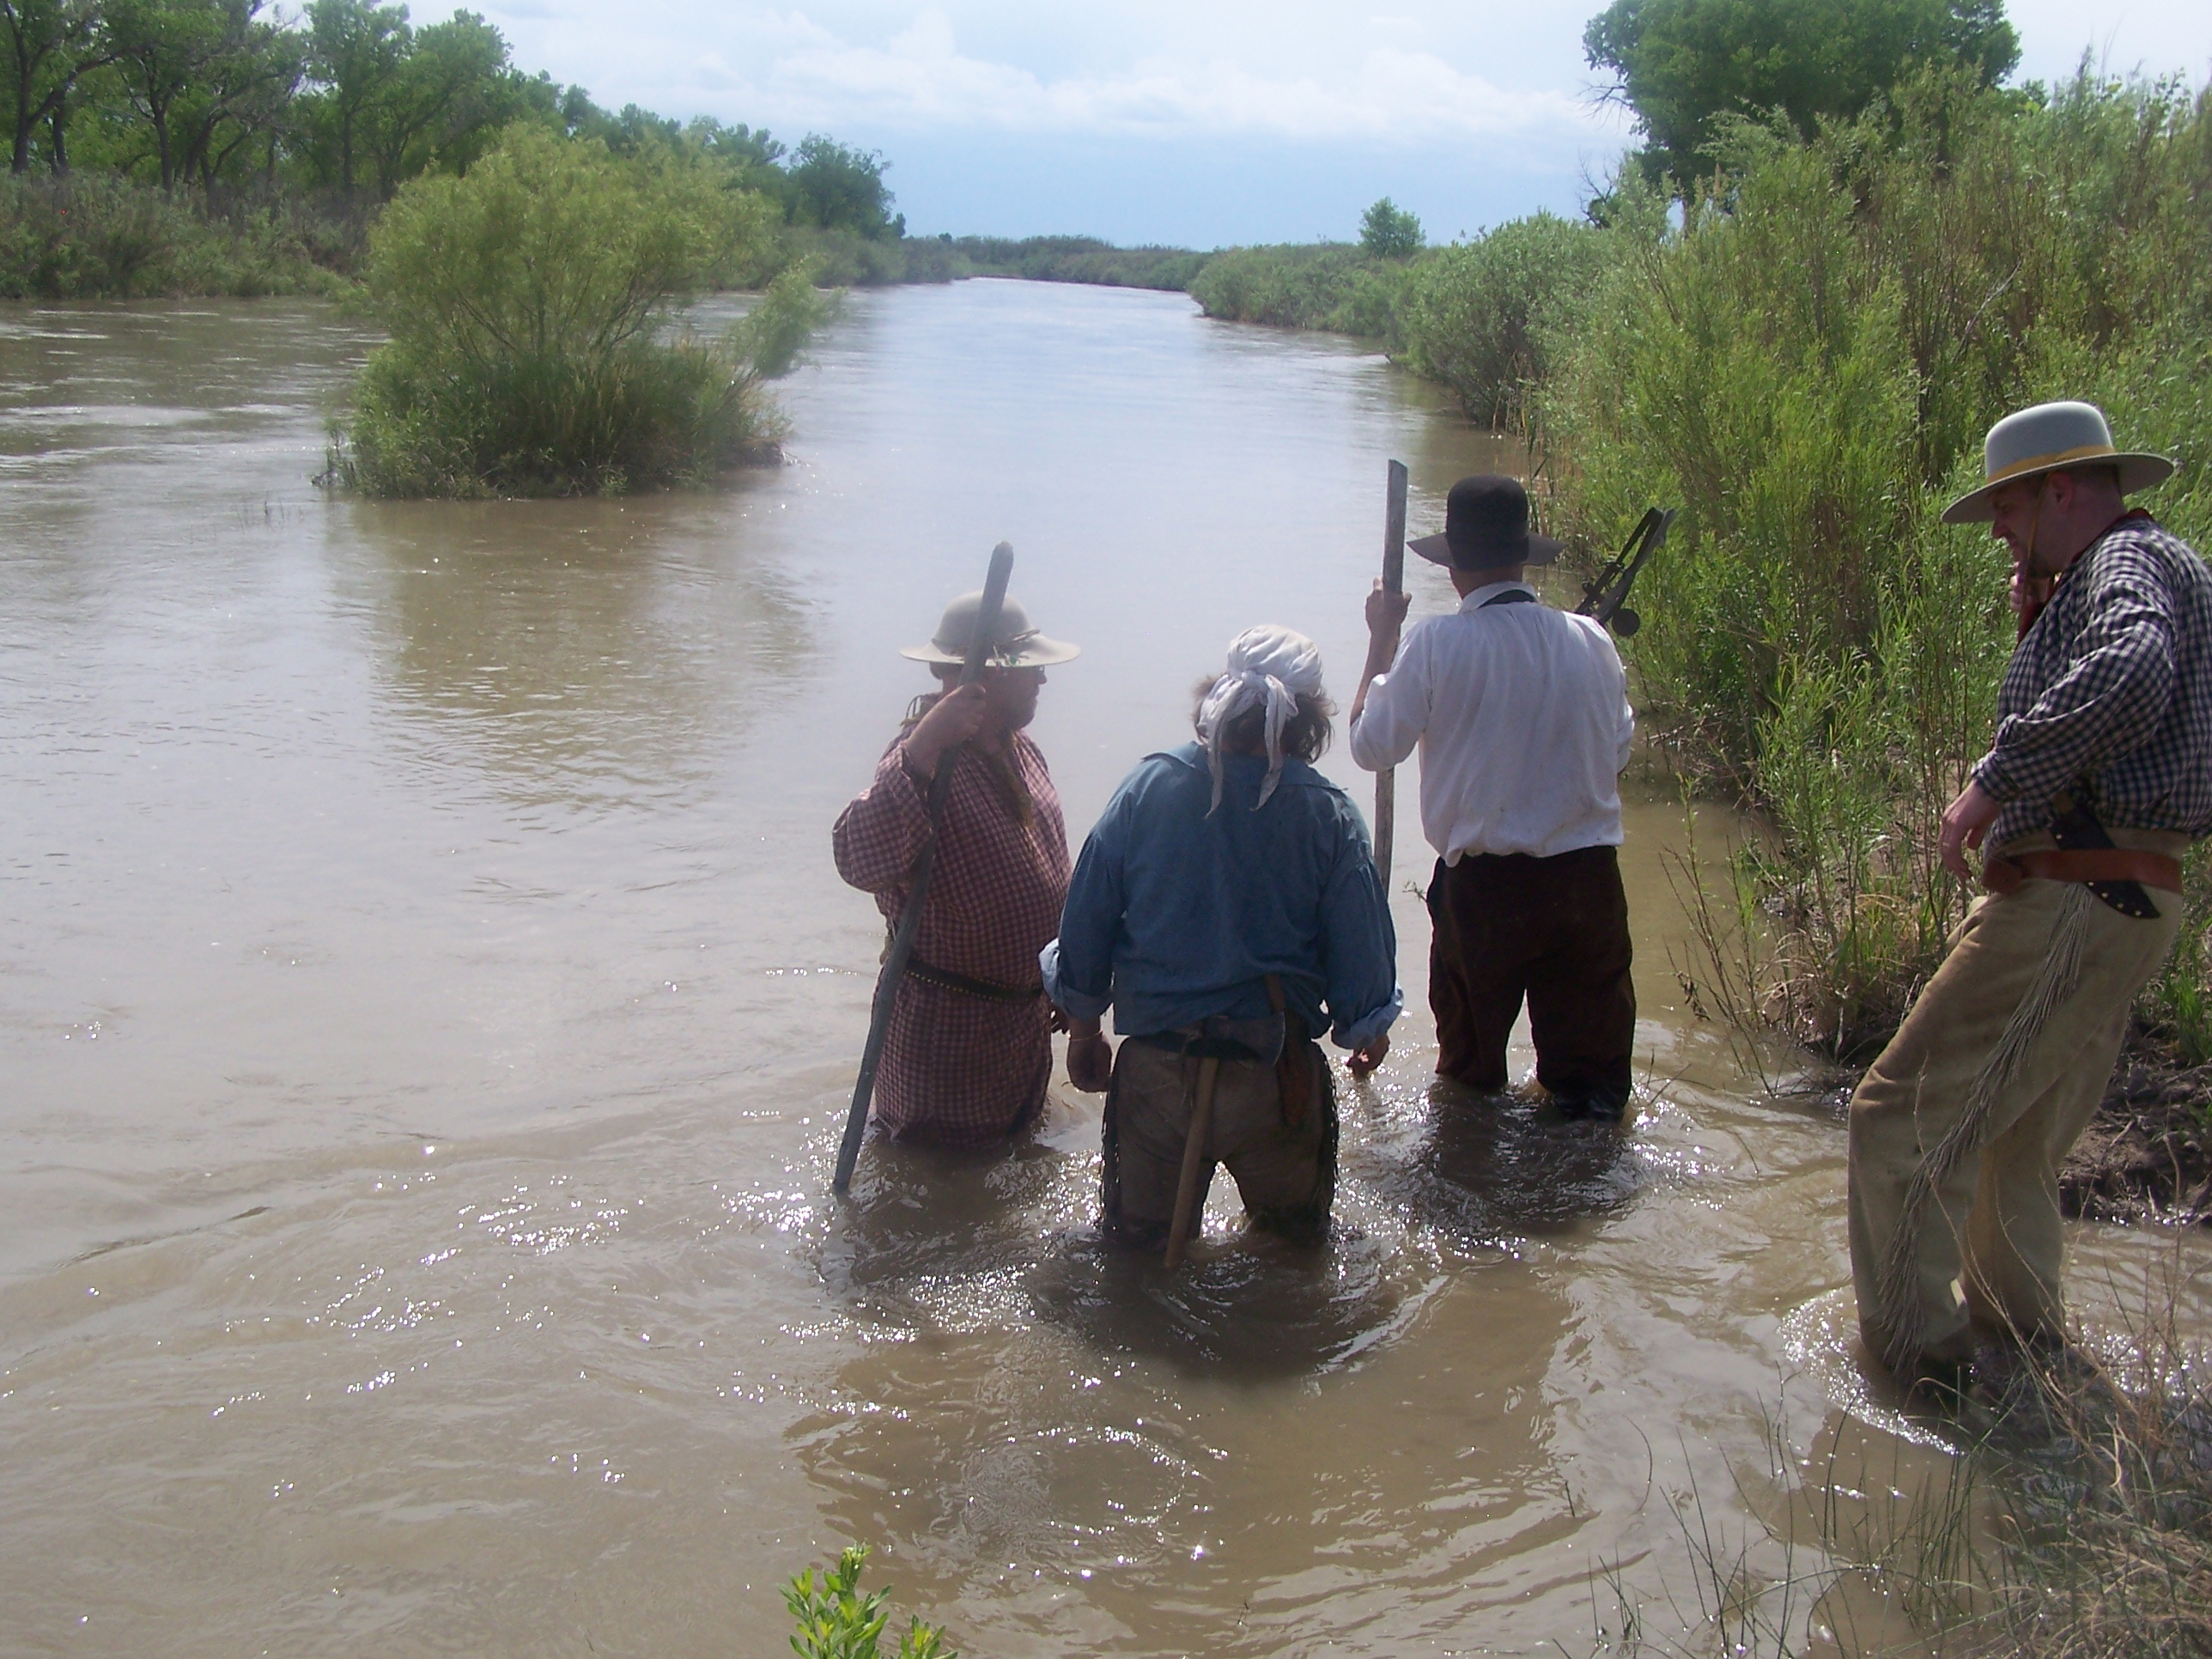 trappers setting traps in river